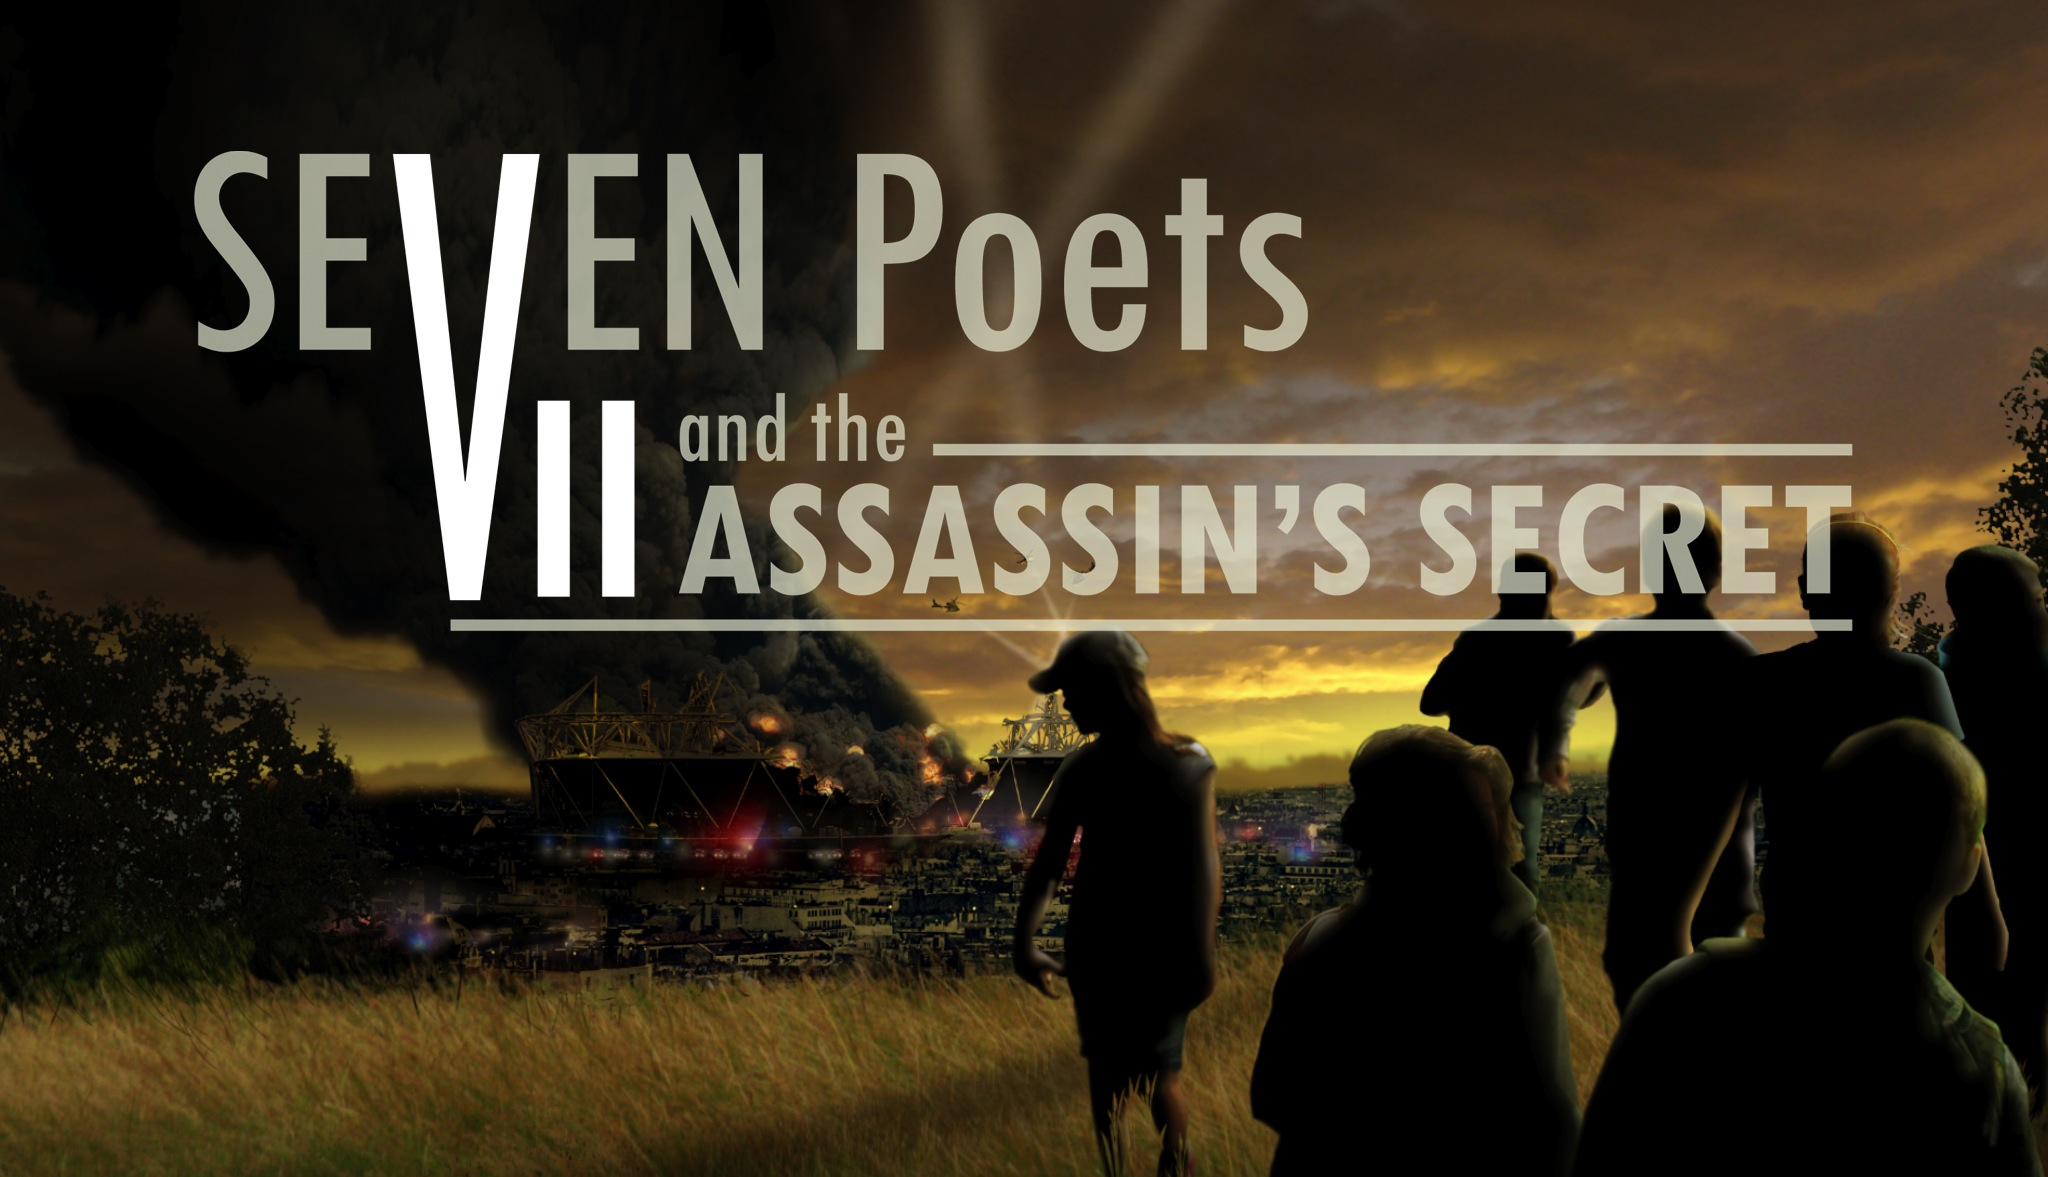 How Many Poets Does It Take To Uncover An Assassin's Secret?